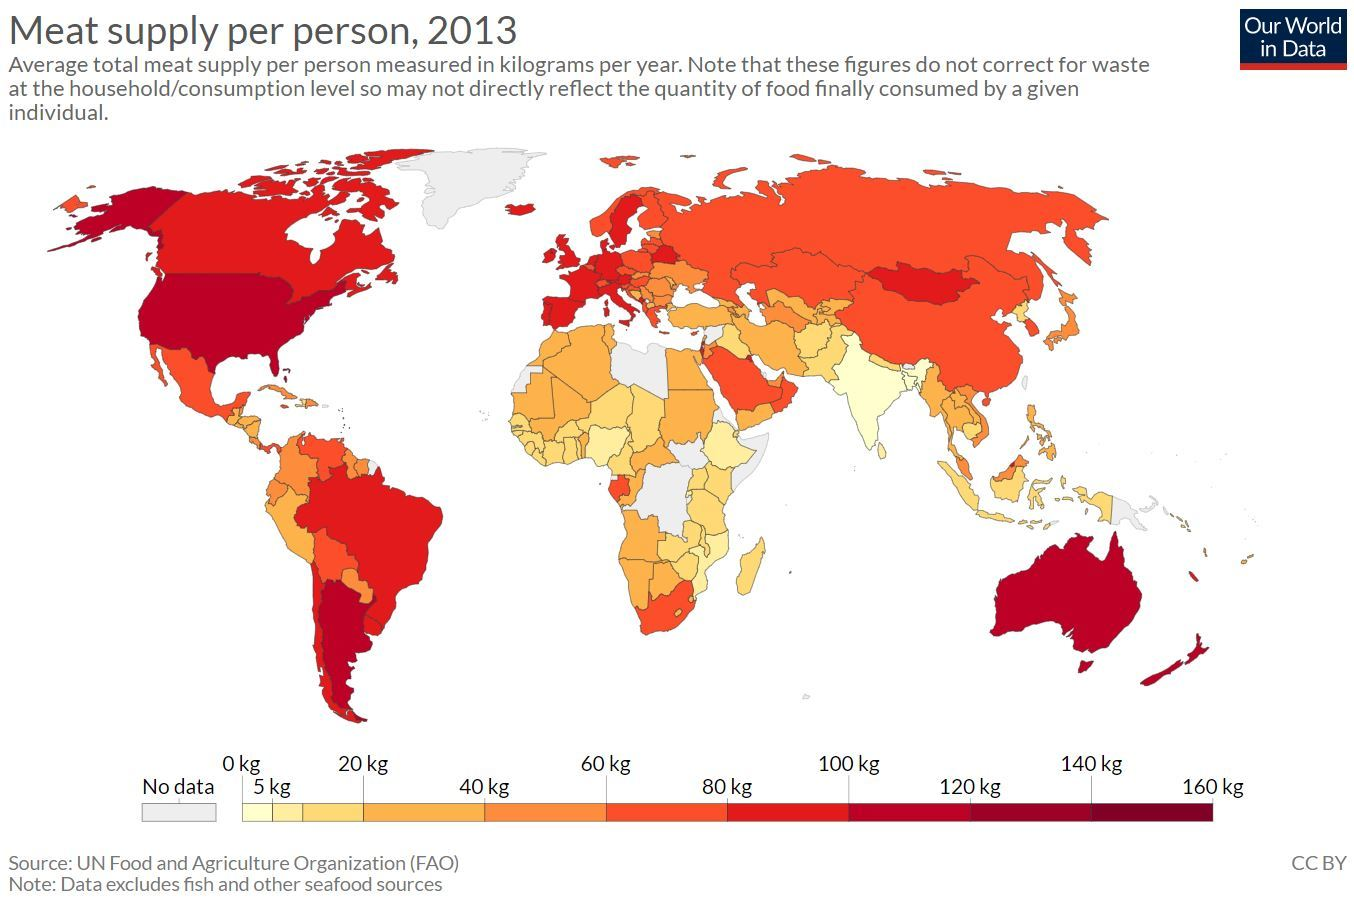 Map of the world showing consumption levels of meat. Highest consumption levels are found in USA, Argentina and Australia. Lowest levels are found in Africa, the Middle and Far East, and India